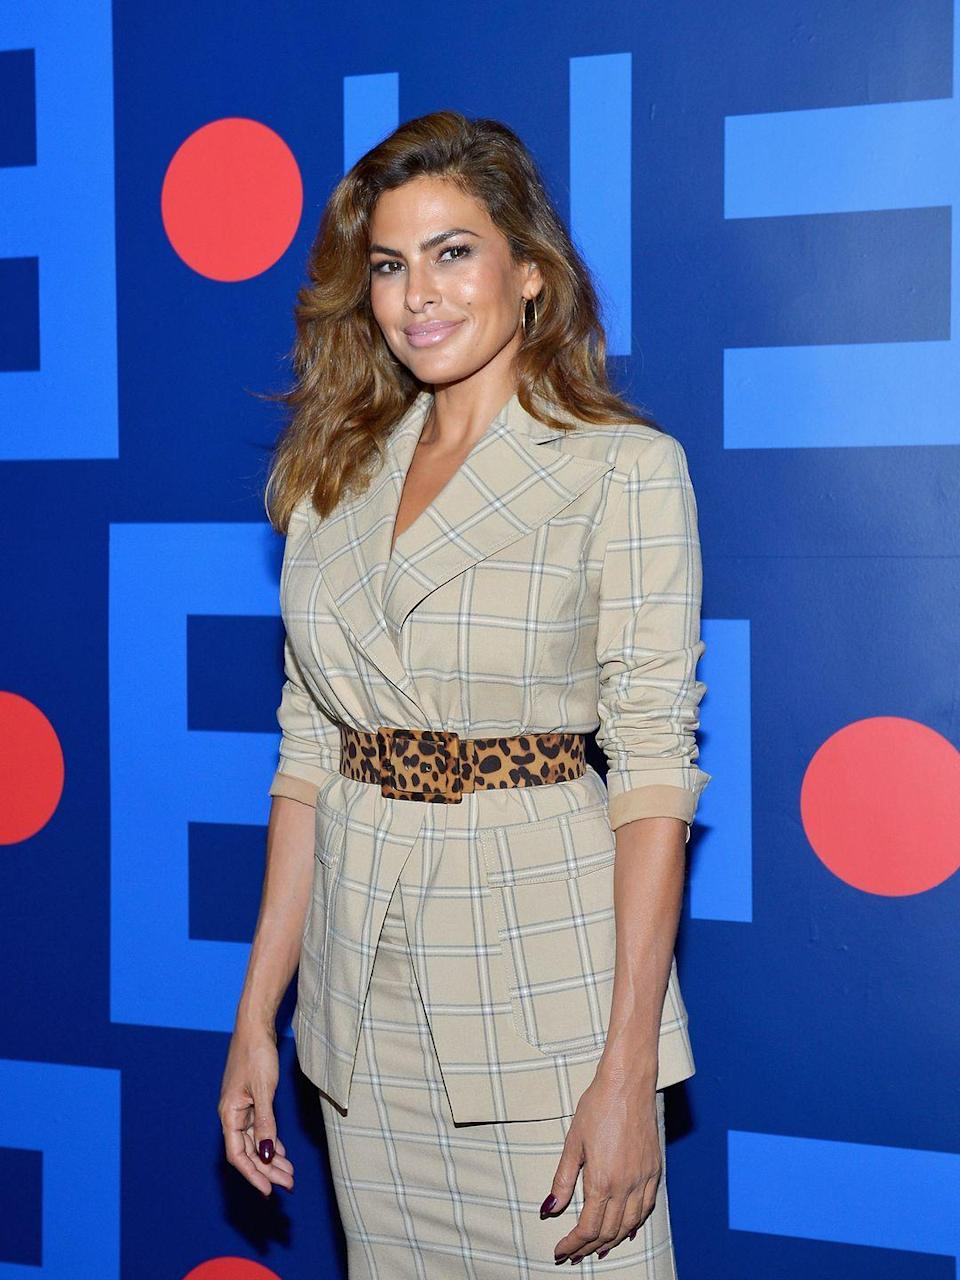 "<p>One of Eva Mendes' first summer jobs was at a fast-food restaurant Hot Dog on A Stick where she sold lemonade, French fries, and, well, hot dogs on sticks. According to <em><a href=""https://www.thedailymeal.com/entertain/celebrities-fast-food-professions-slideshow/list"" rel=""nofollow noopener"" target=""_blank"" data-ylk=""slk:The Daily Meal"" class=""link rapid-noclick-resp"">The Daily Meal</a></em>, the actress worked at the Glendale Galleria location where she earned $4.25/hour.</p>"